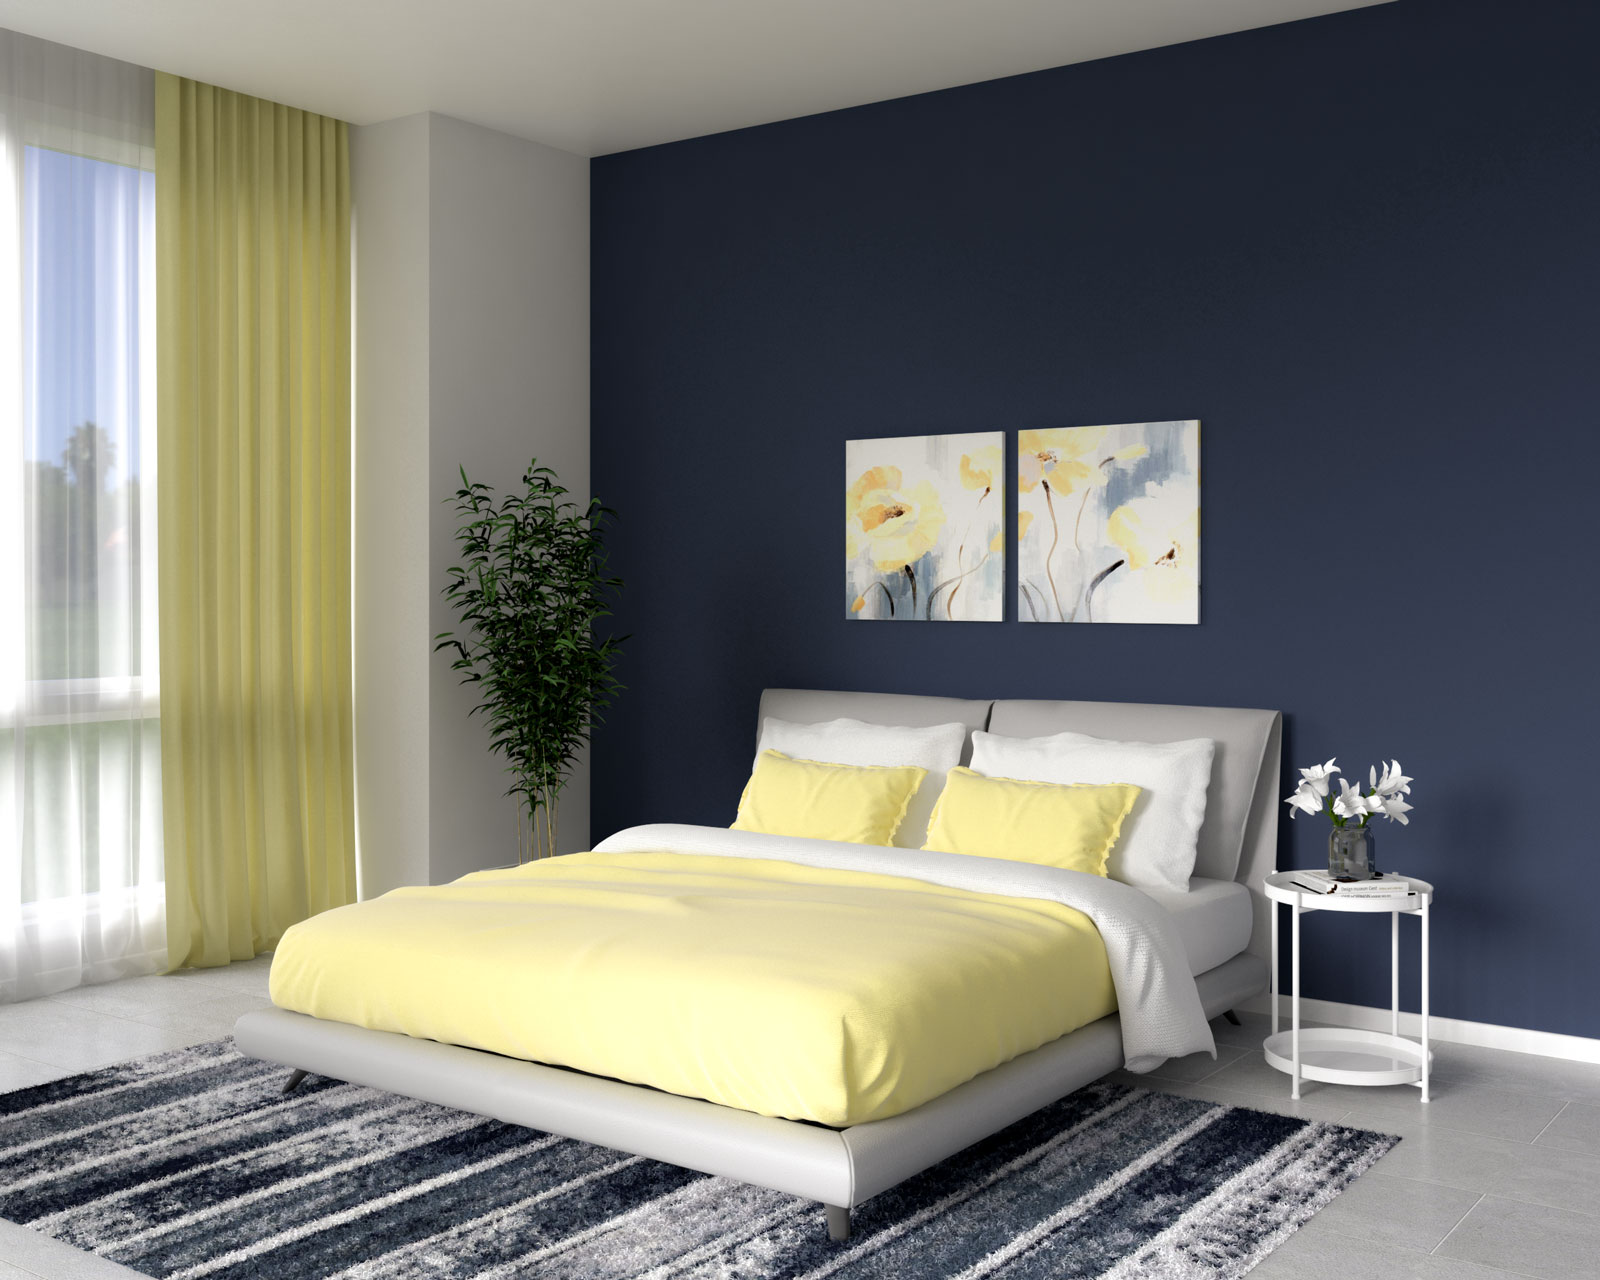 Royal blue accent wall with yellow decor